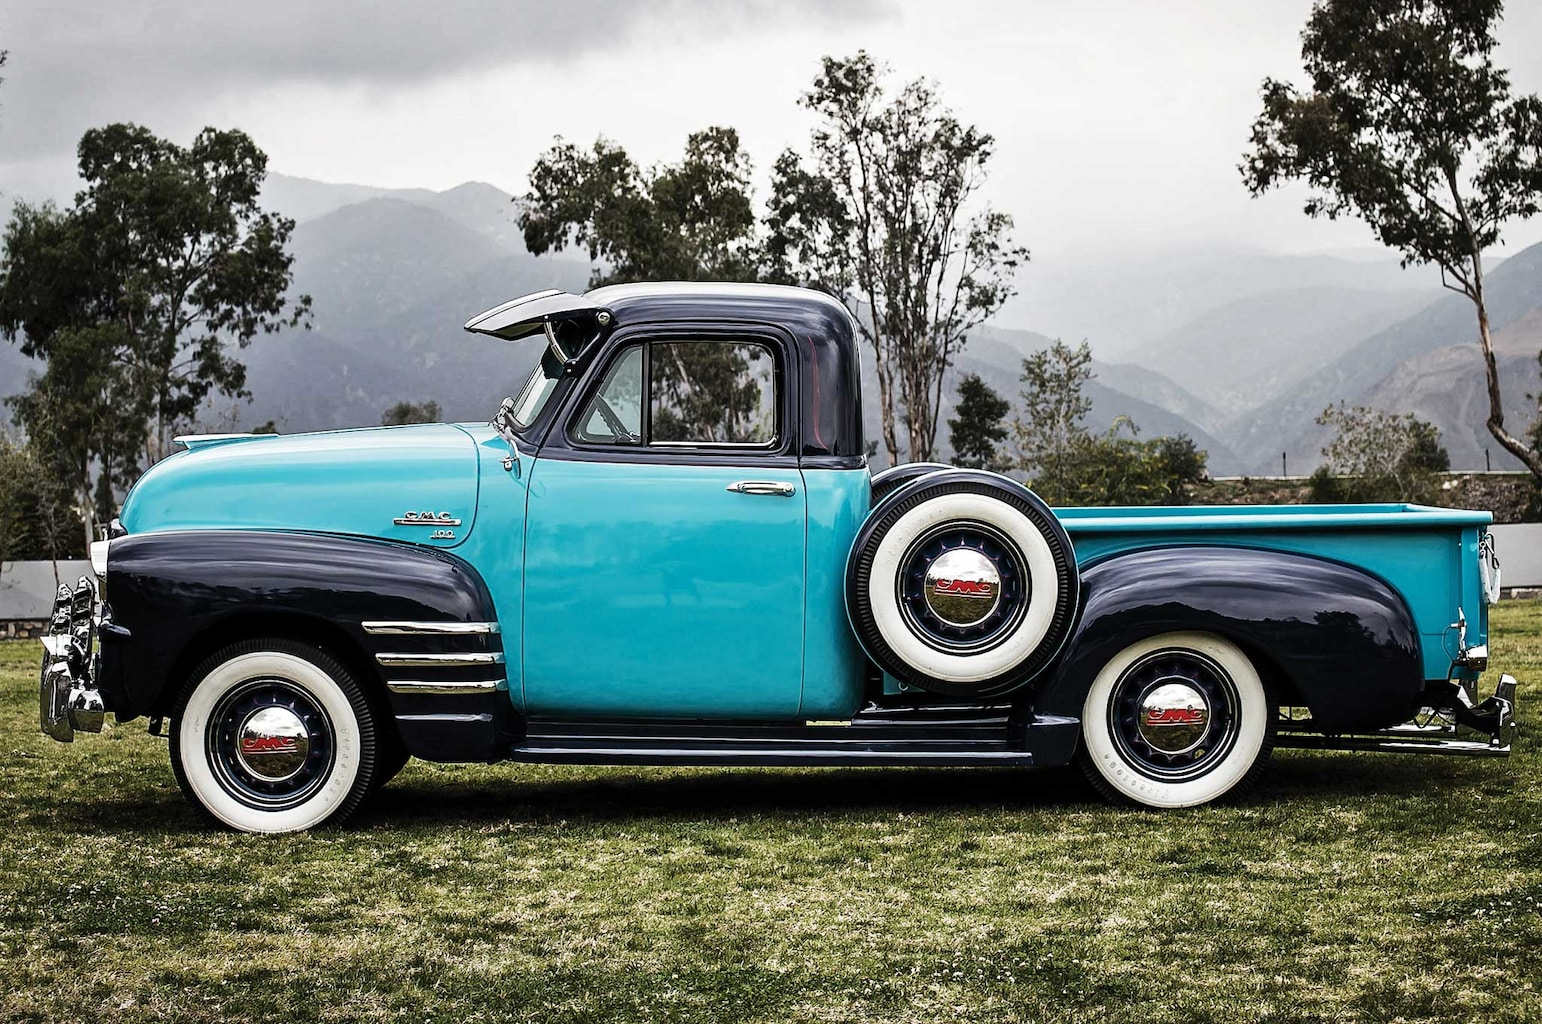 1954 Gmc Pickup Generational Gmc Lowrider